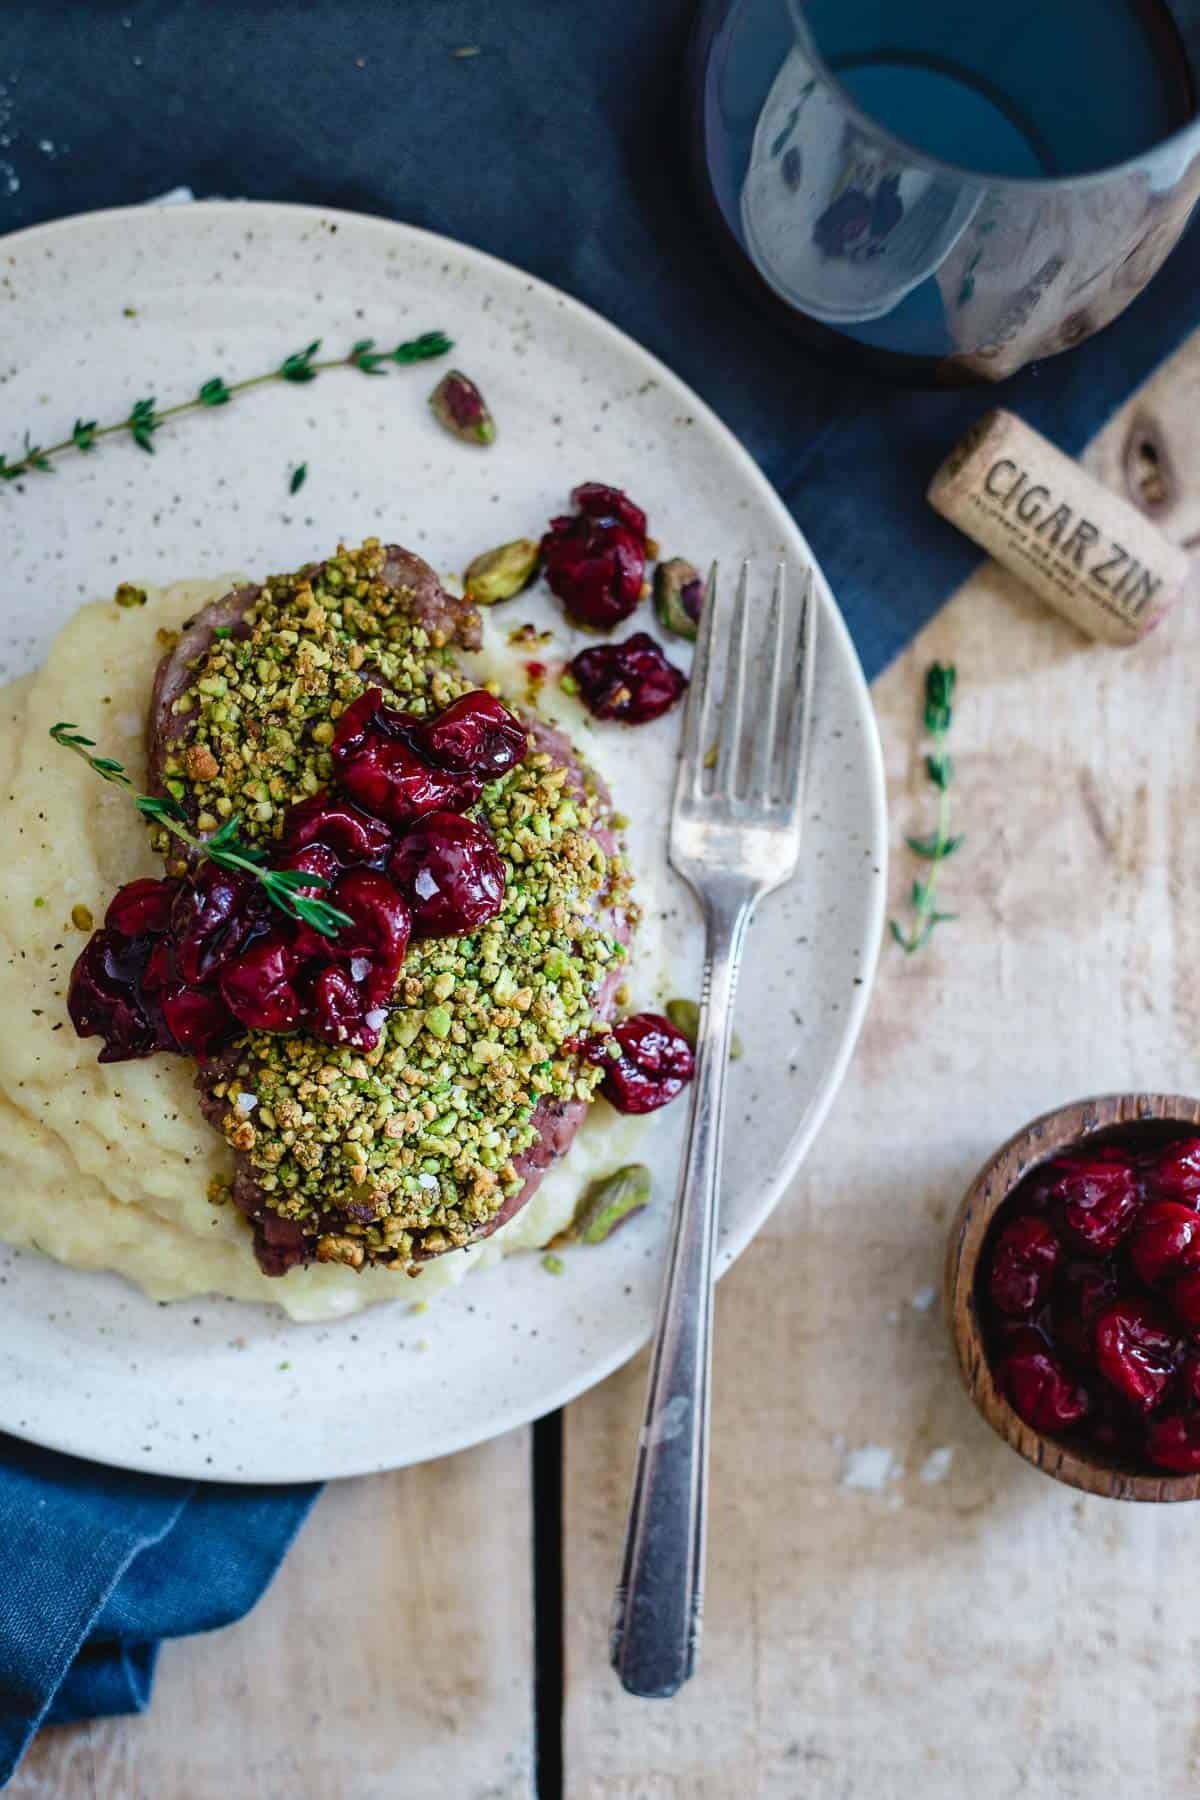 These pistachio crusted lamb chops with red wine cherries are a simple, yet elegant dinner sure to impress that special someone.